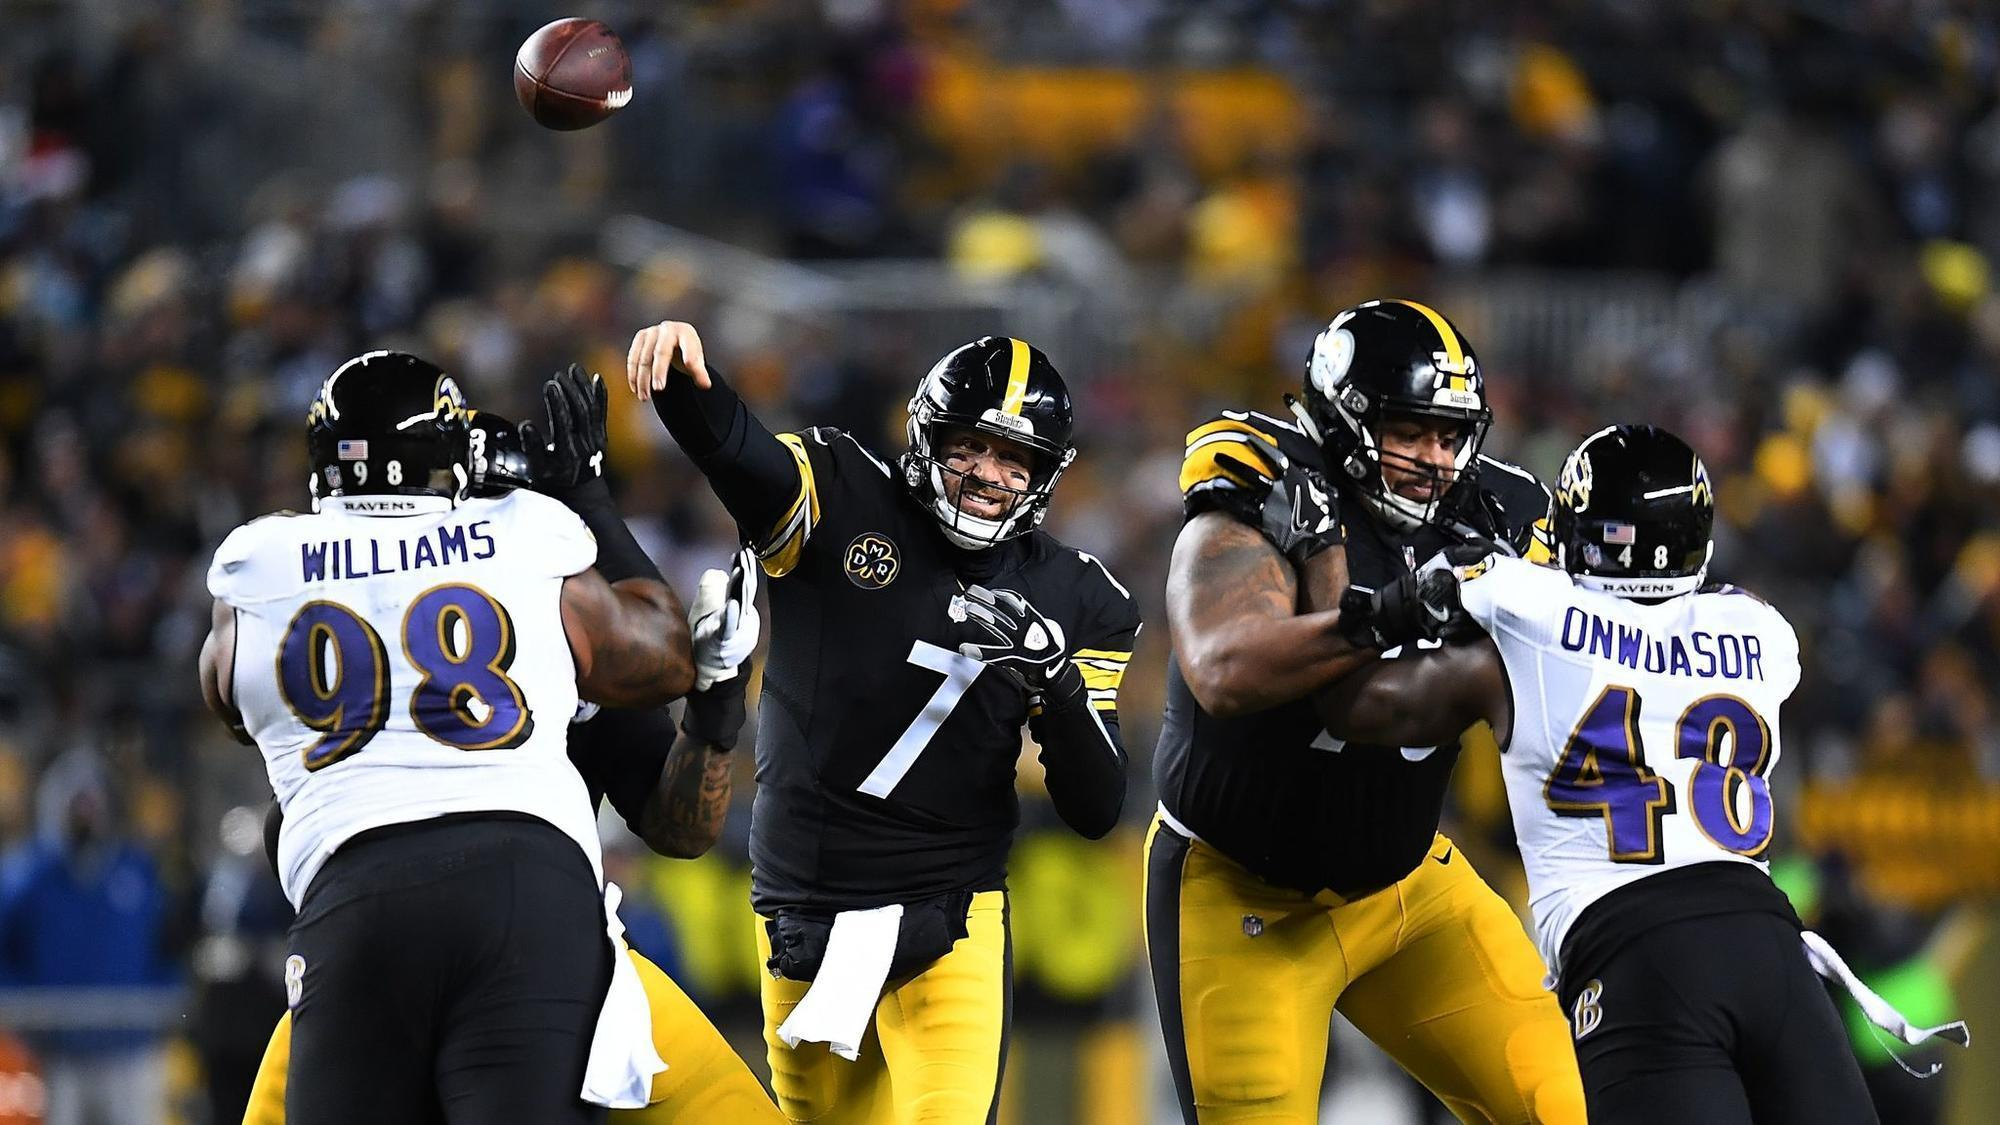 Instant analysis from the Ravens' 39-38 loss to the ...Steelers